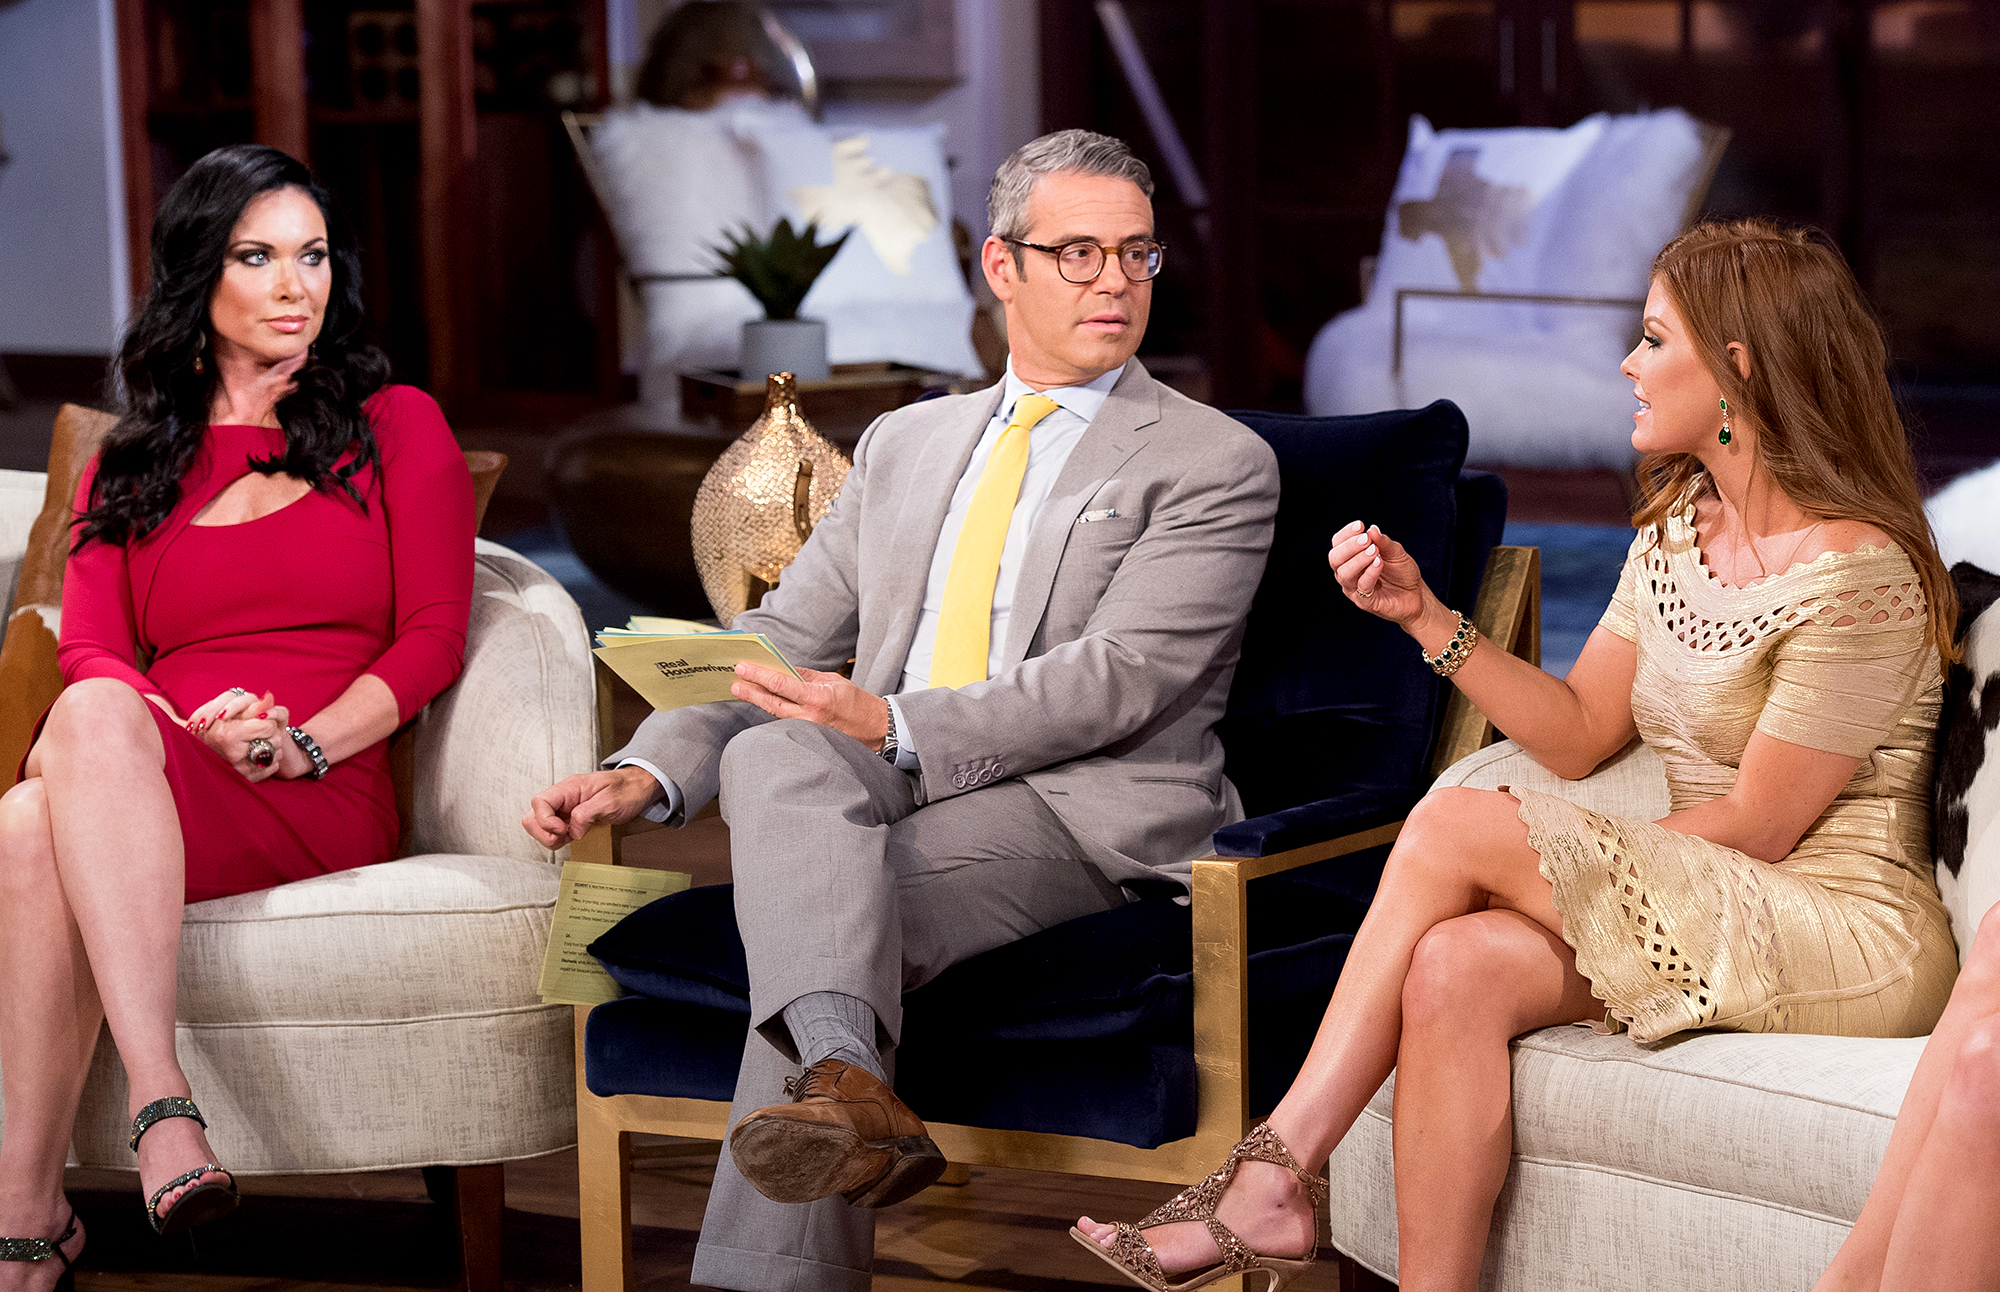 Real Housewives of Dallas' Reunion: Fans cheer Andy Cohen as he follows LeeAnne and challenges her false front